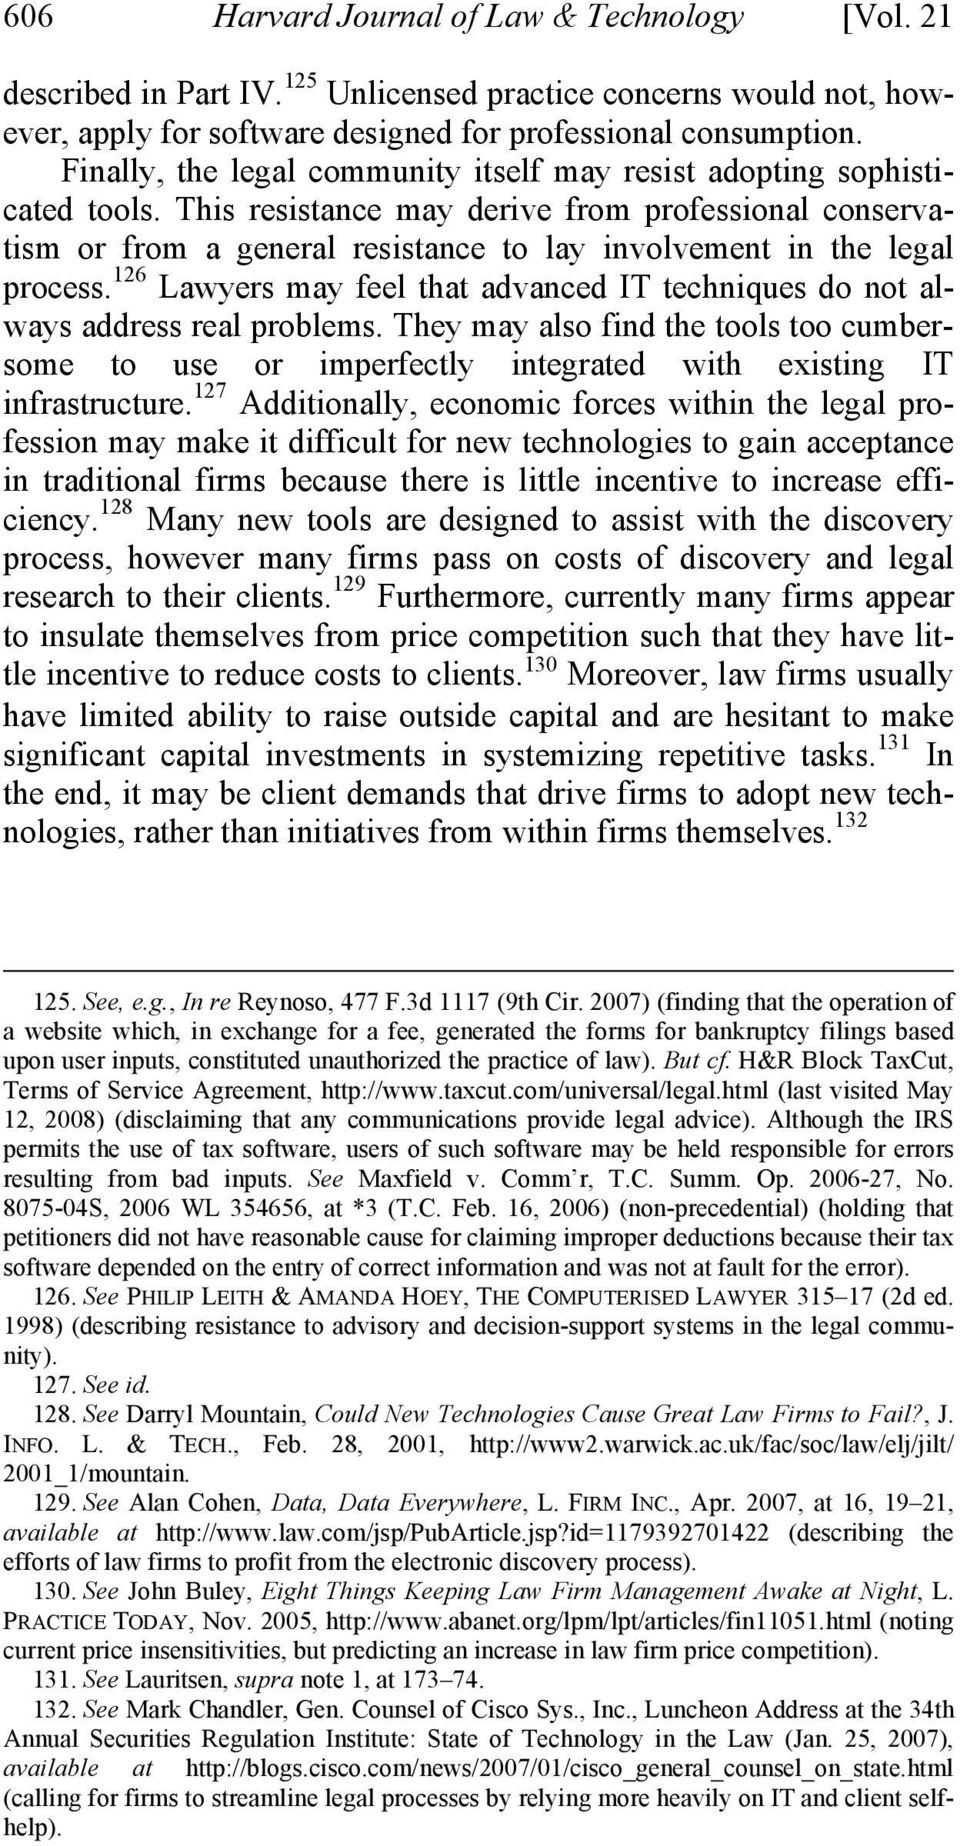 An argument about the increasing irrelevance of the antitrust law